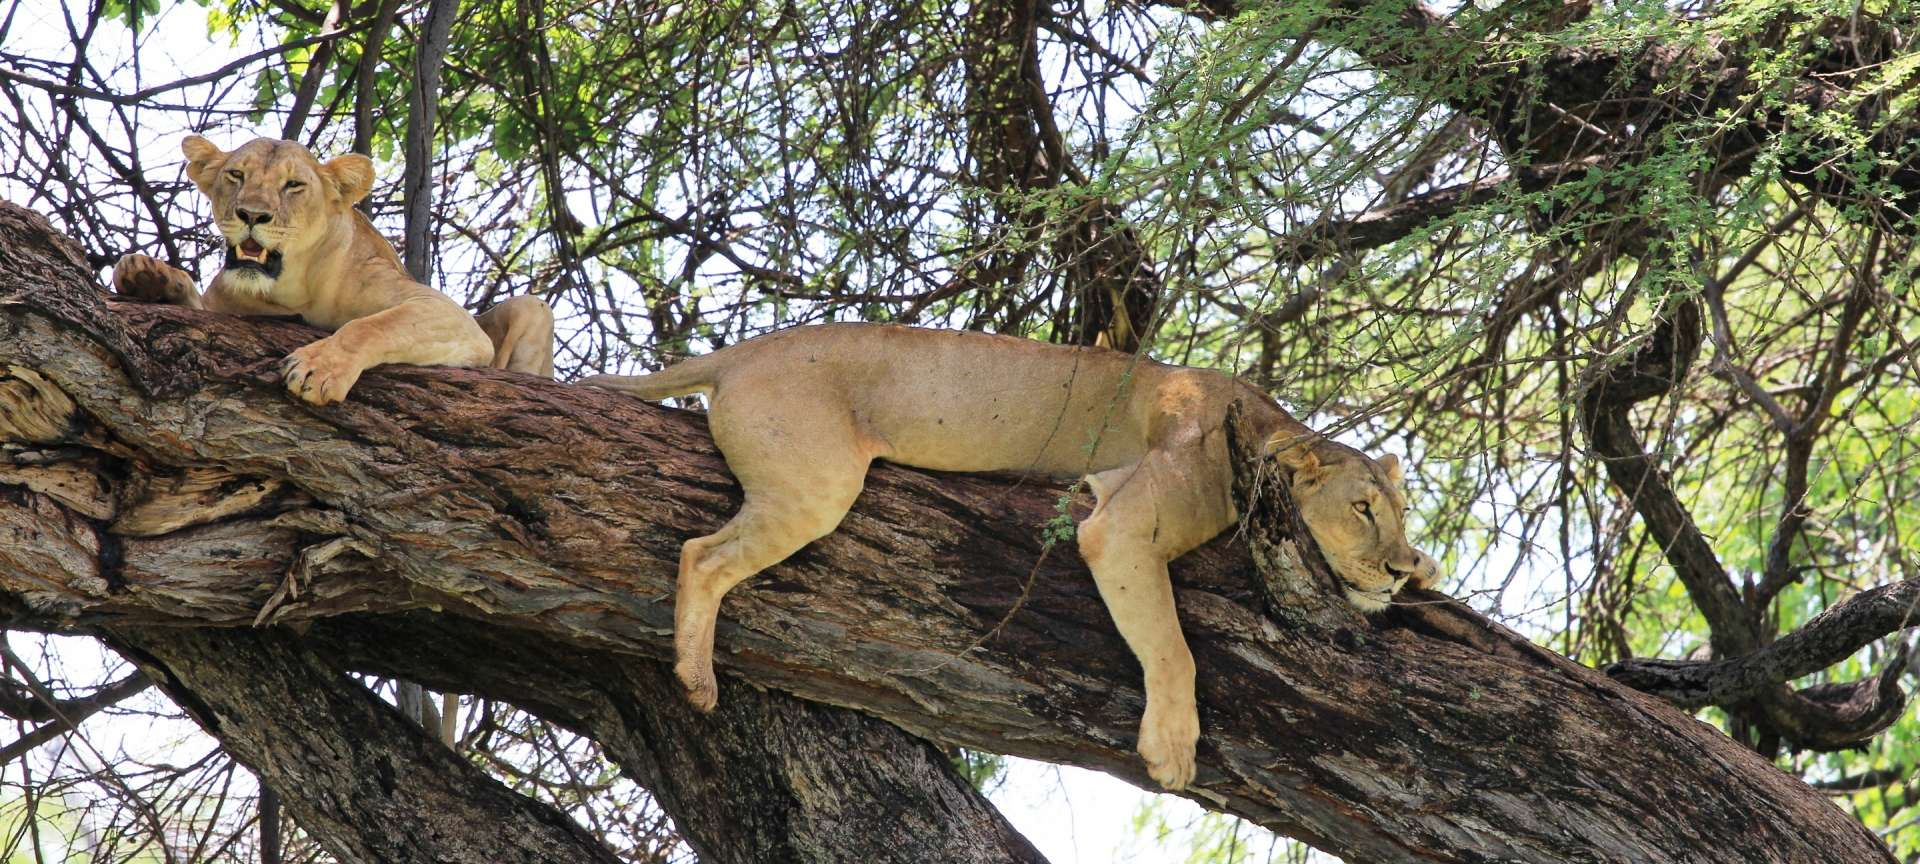 Meru National Park - Africa Wildlife Safaris